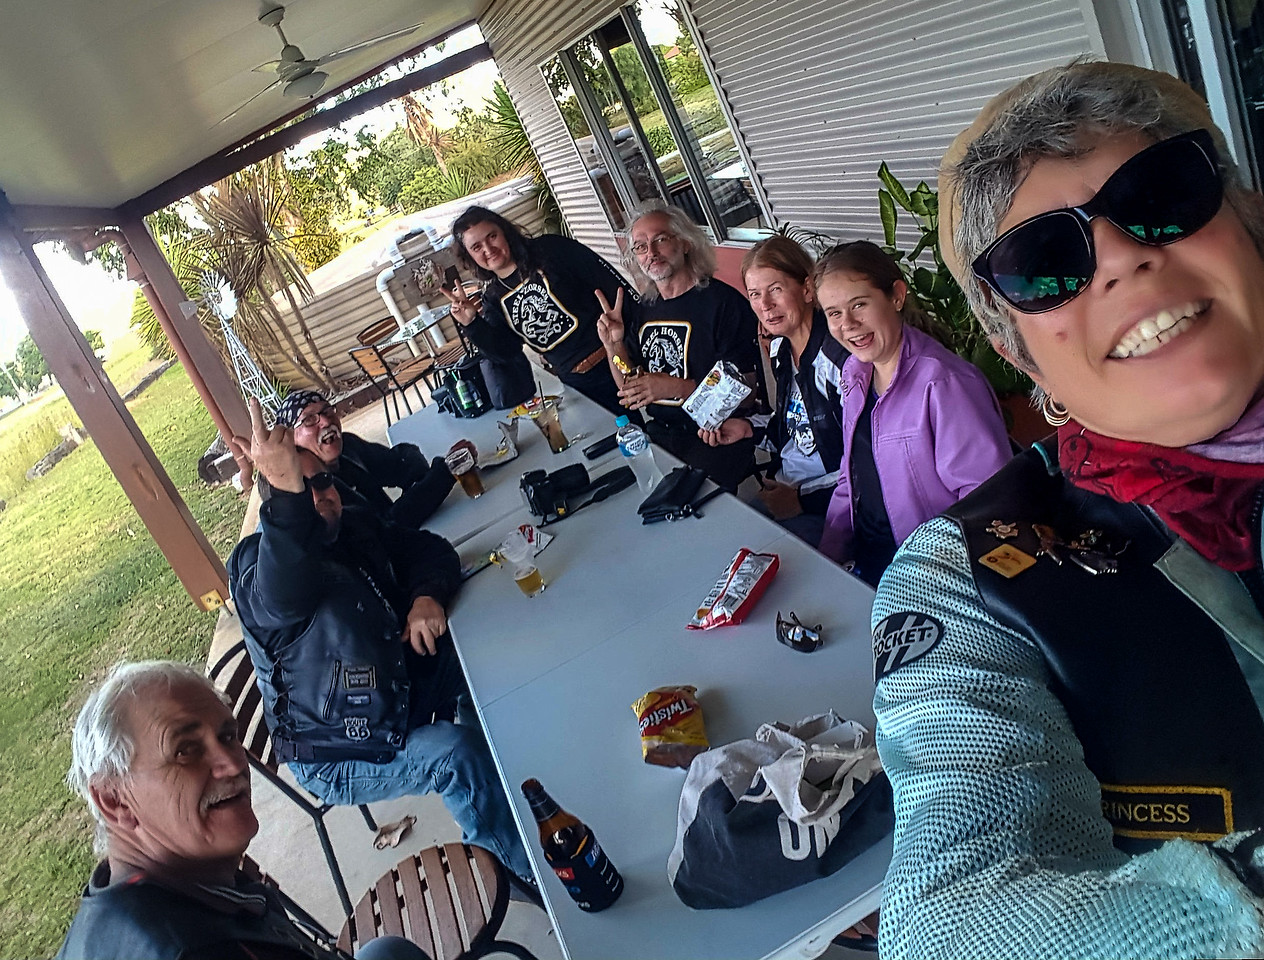 iPhone photo taken by Princess during the Steel Horses Poker Run (West Ride) on Sunday 30th April 2017.